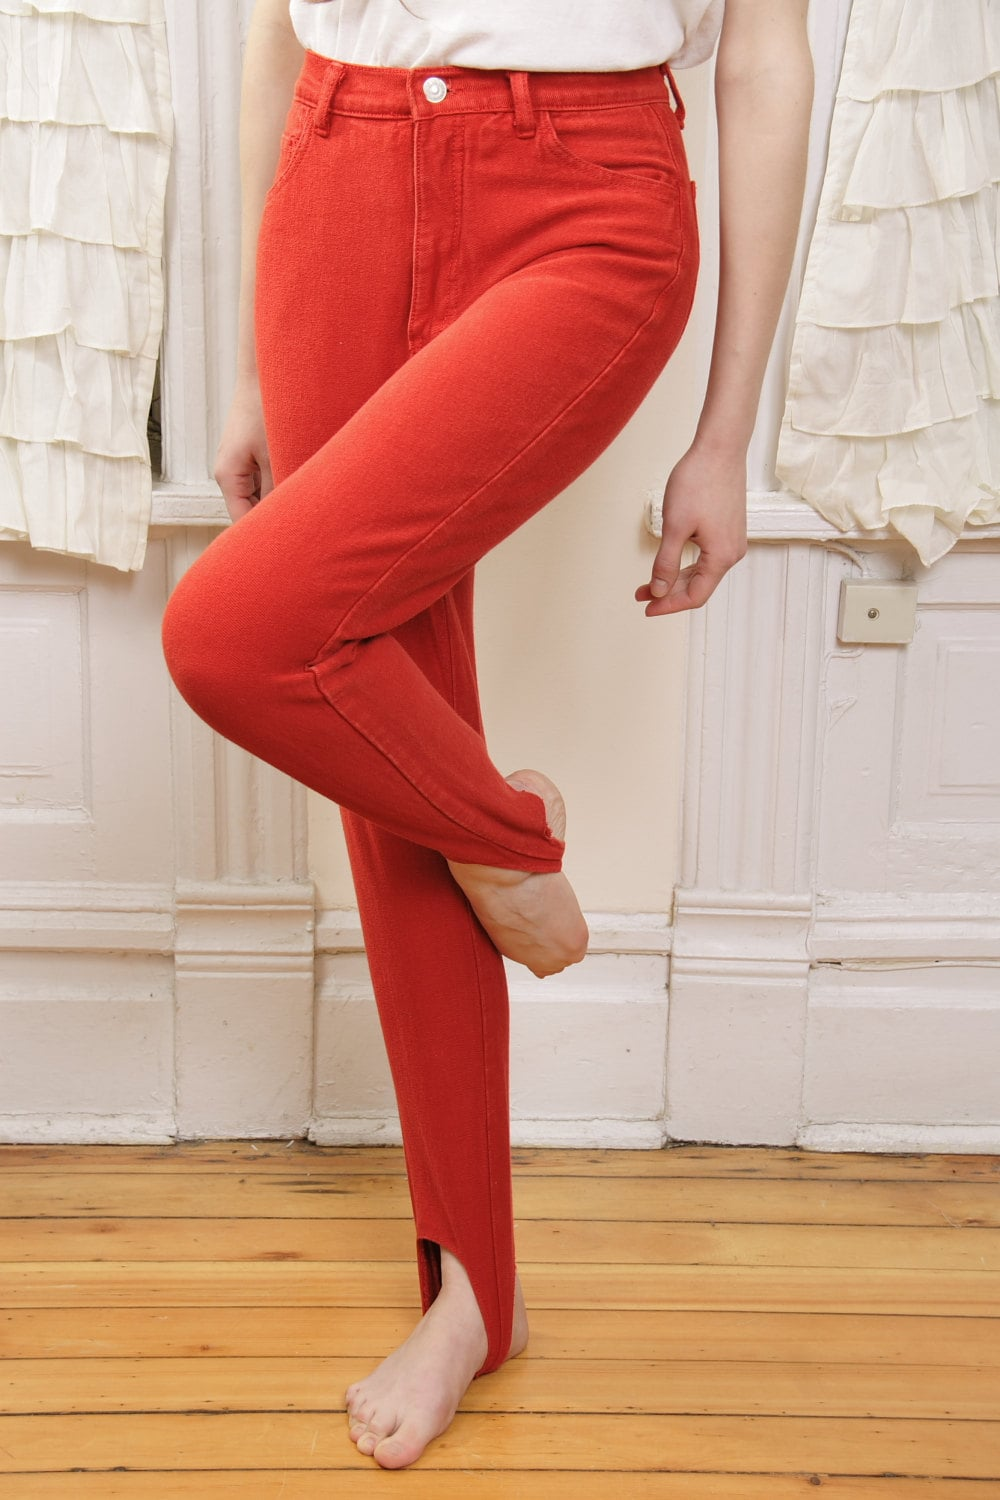 stirrup pants 50 totally rad trends from the 80s and